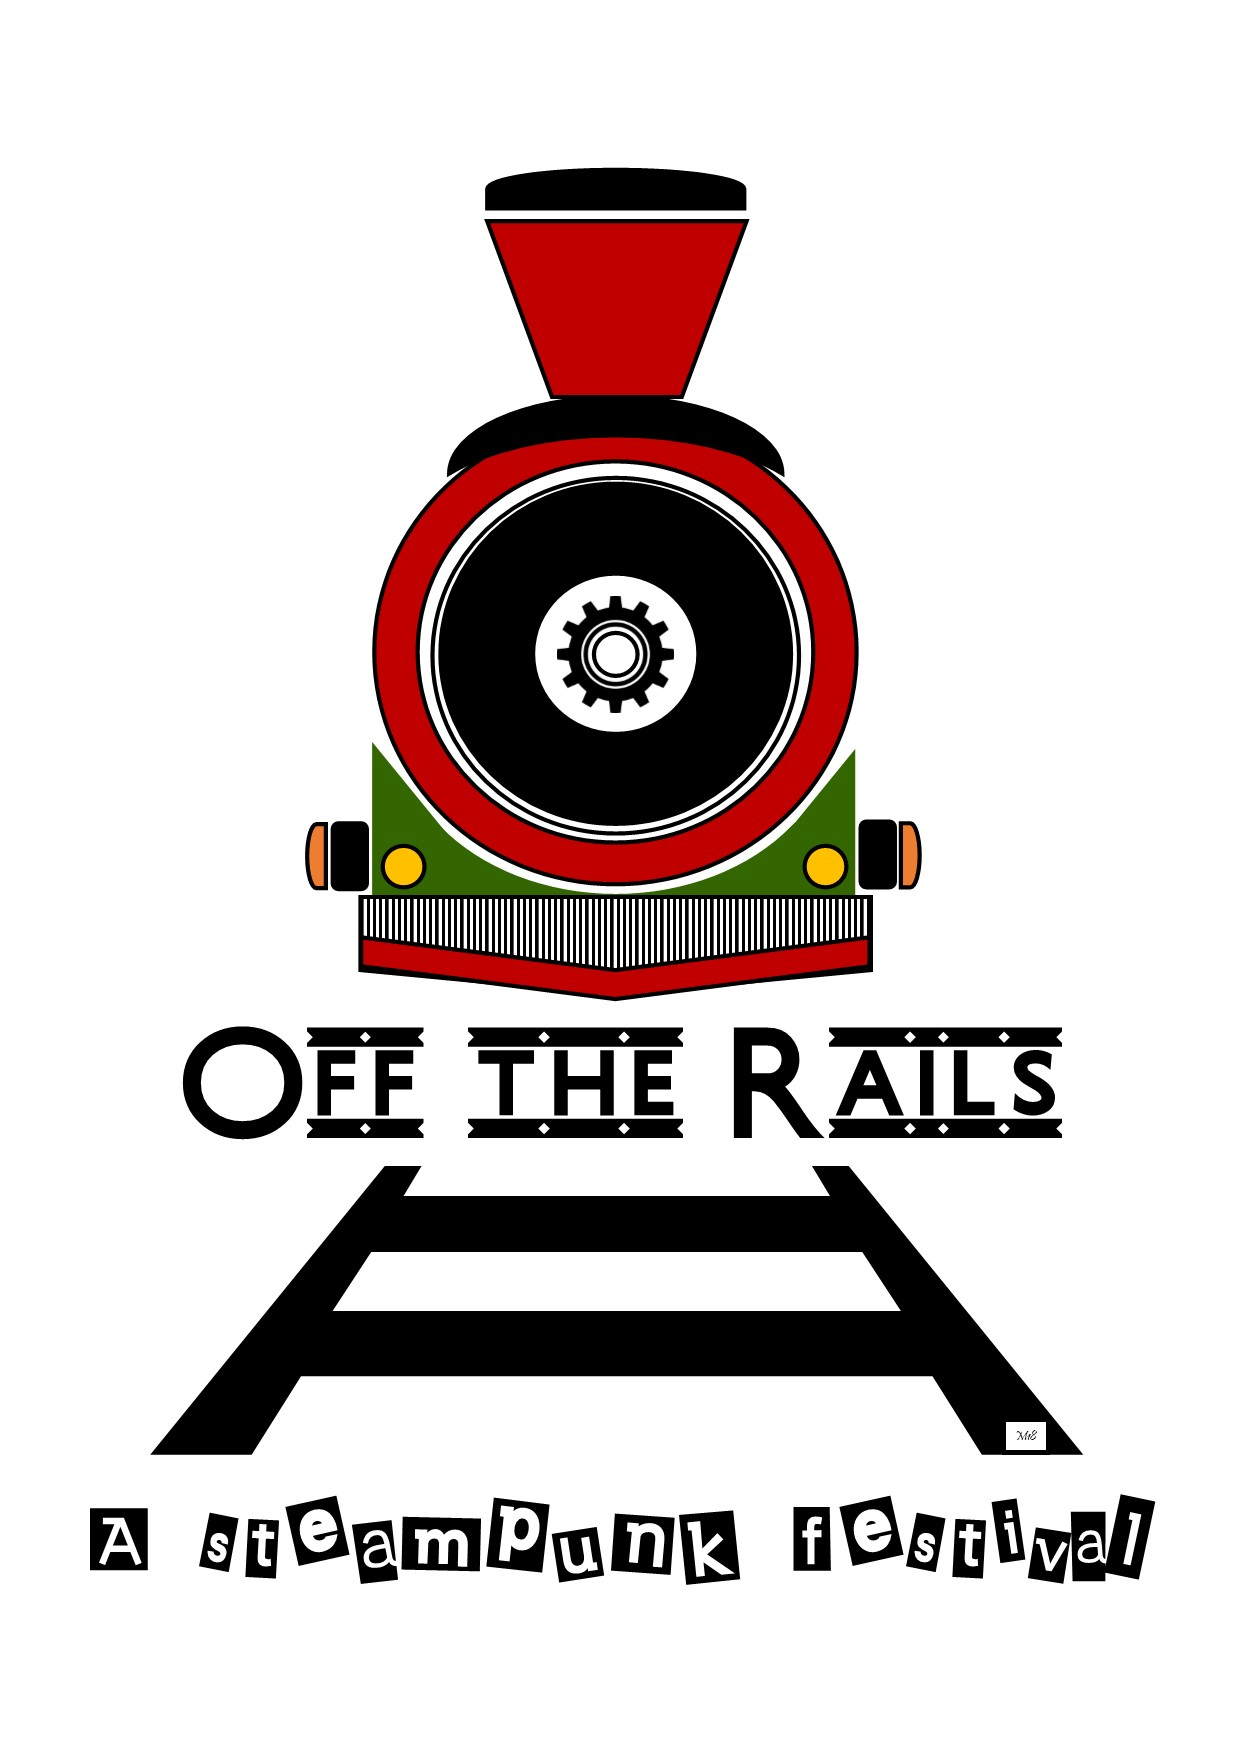 Off the Rails: A Steampunk Weekend